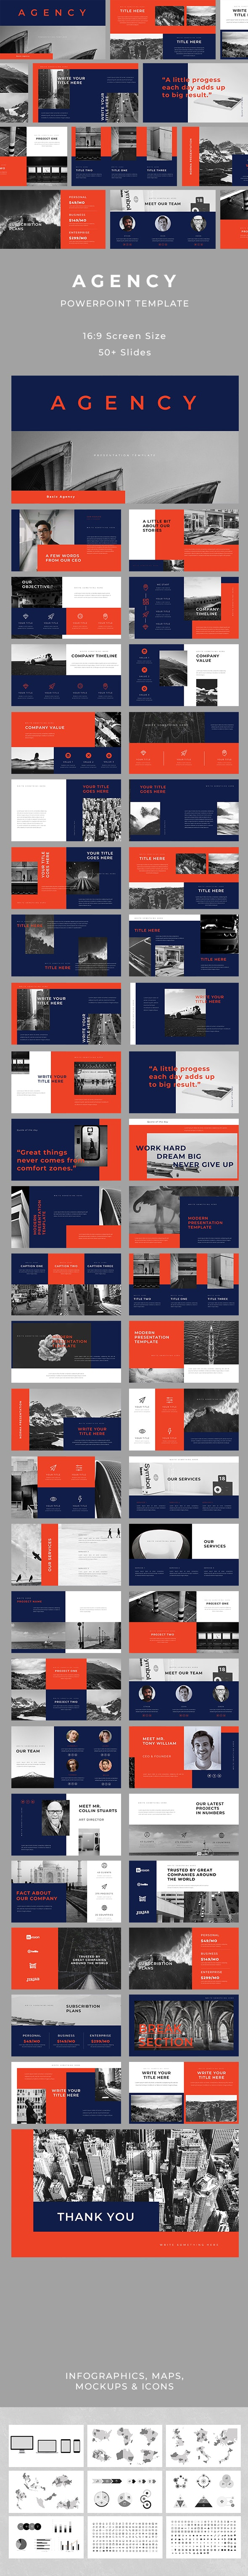 Agency PowerPoint - Business PowerPoint Templates